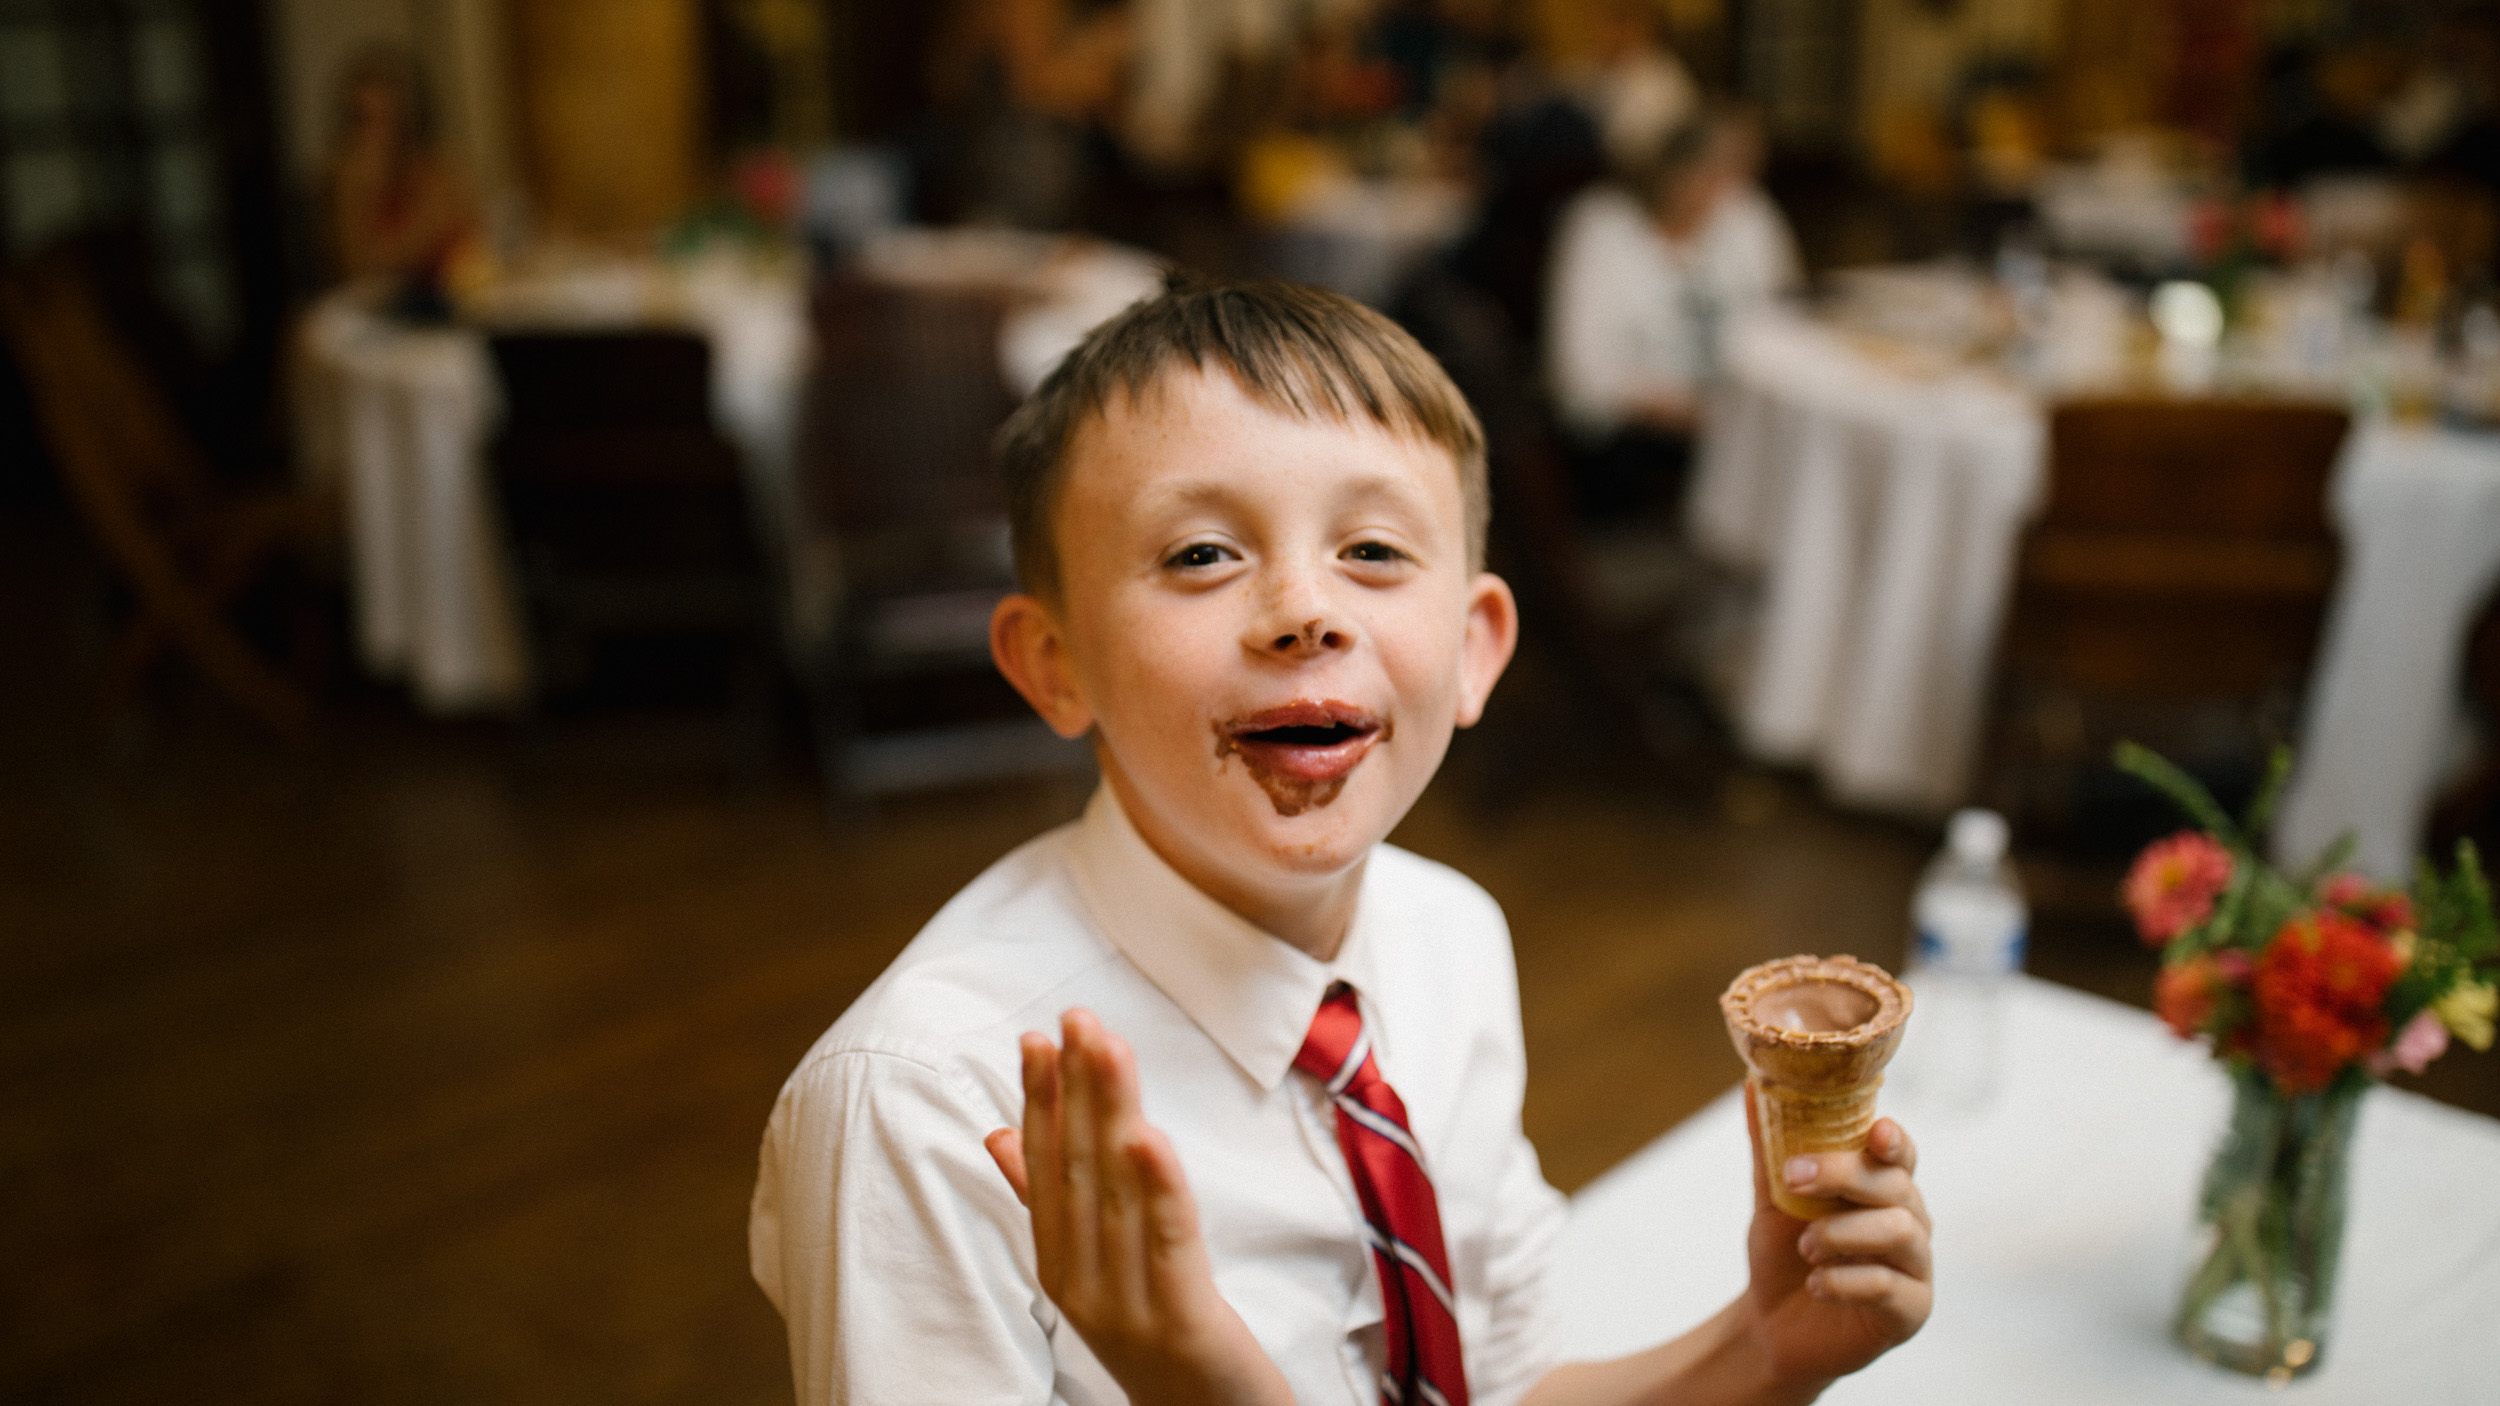 alec_vanderboom_john_micahel_lucy_kansas_city_wedding_photographer-0068.jpg